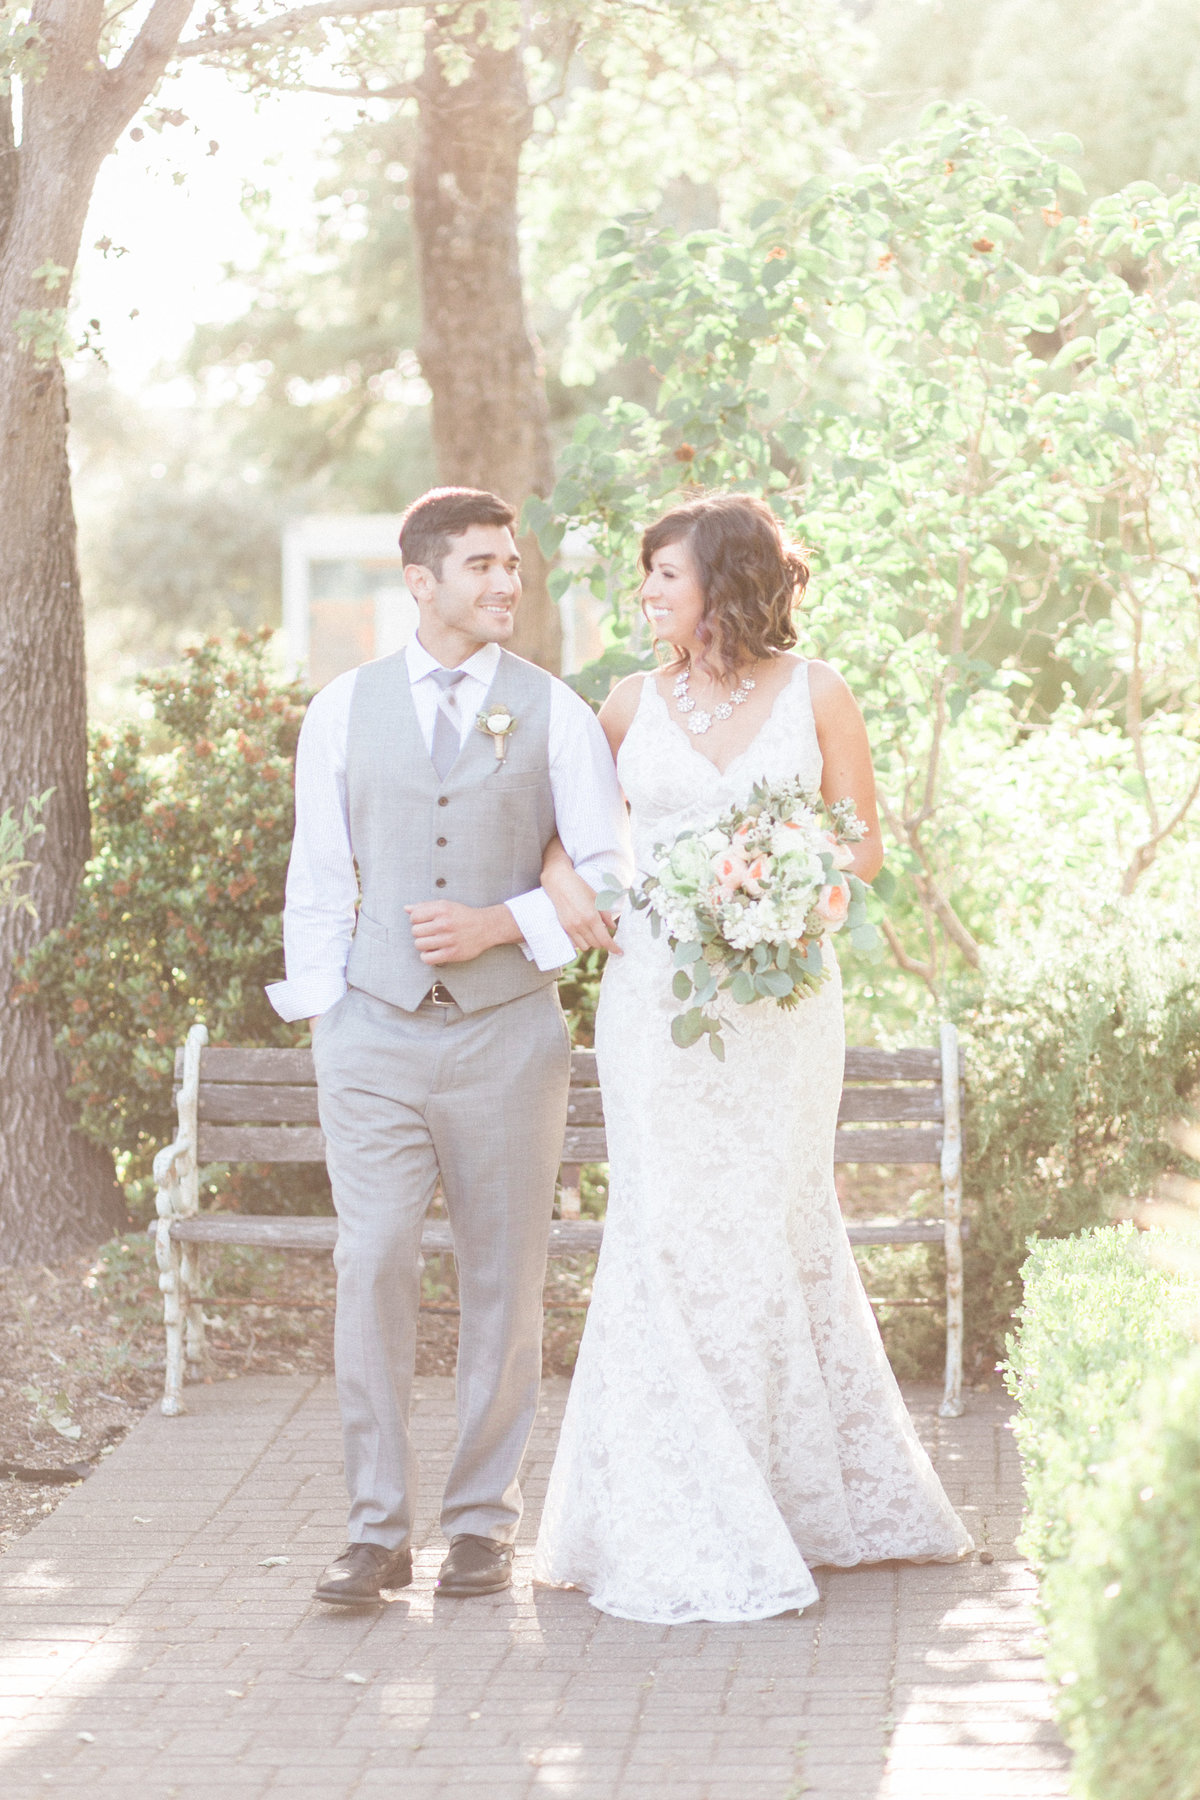 Evonne and Darren Bridal Couples